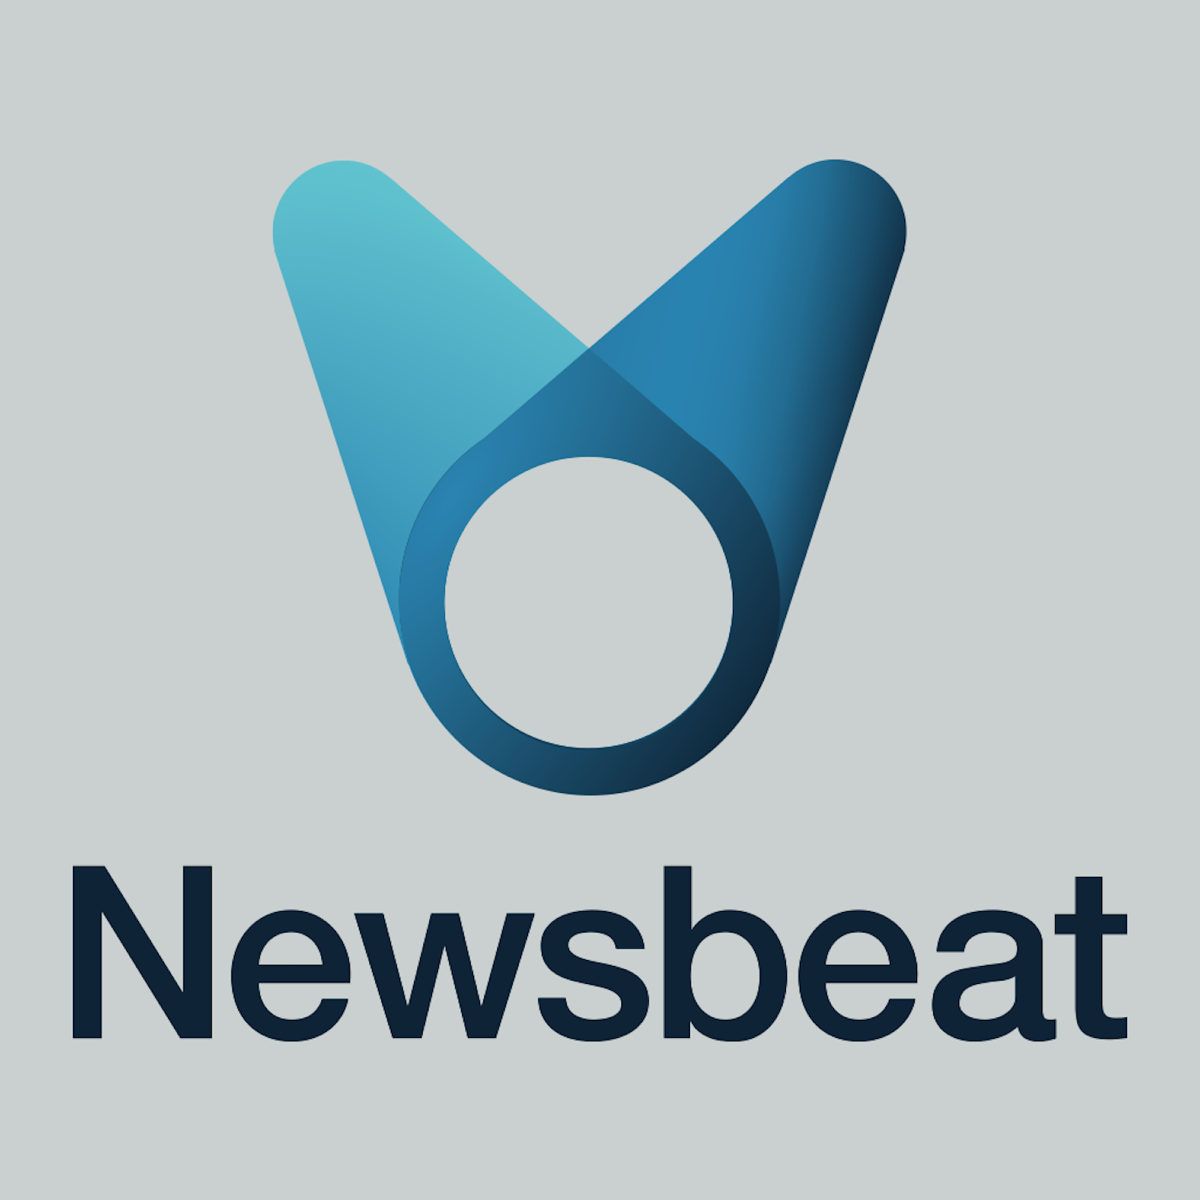 Top episodes of Newsbeat Podcast on Podyssey Podcasts